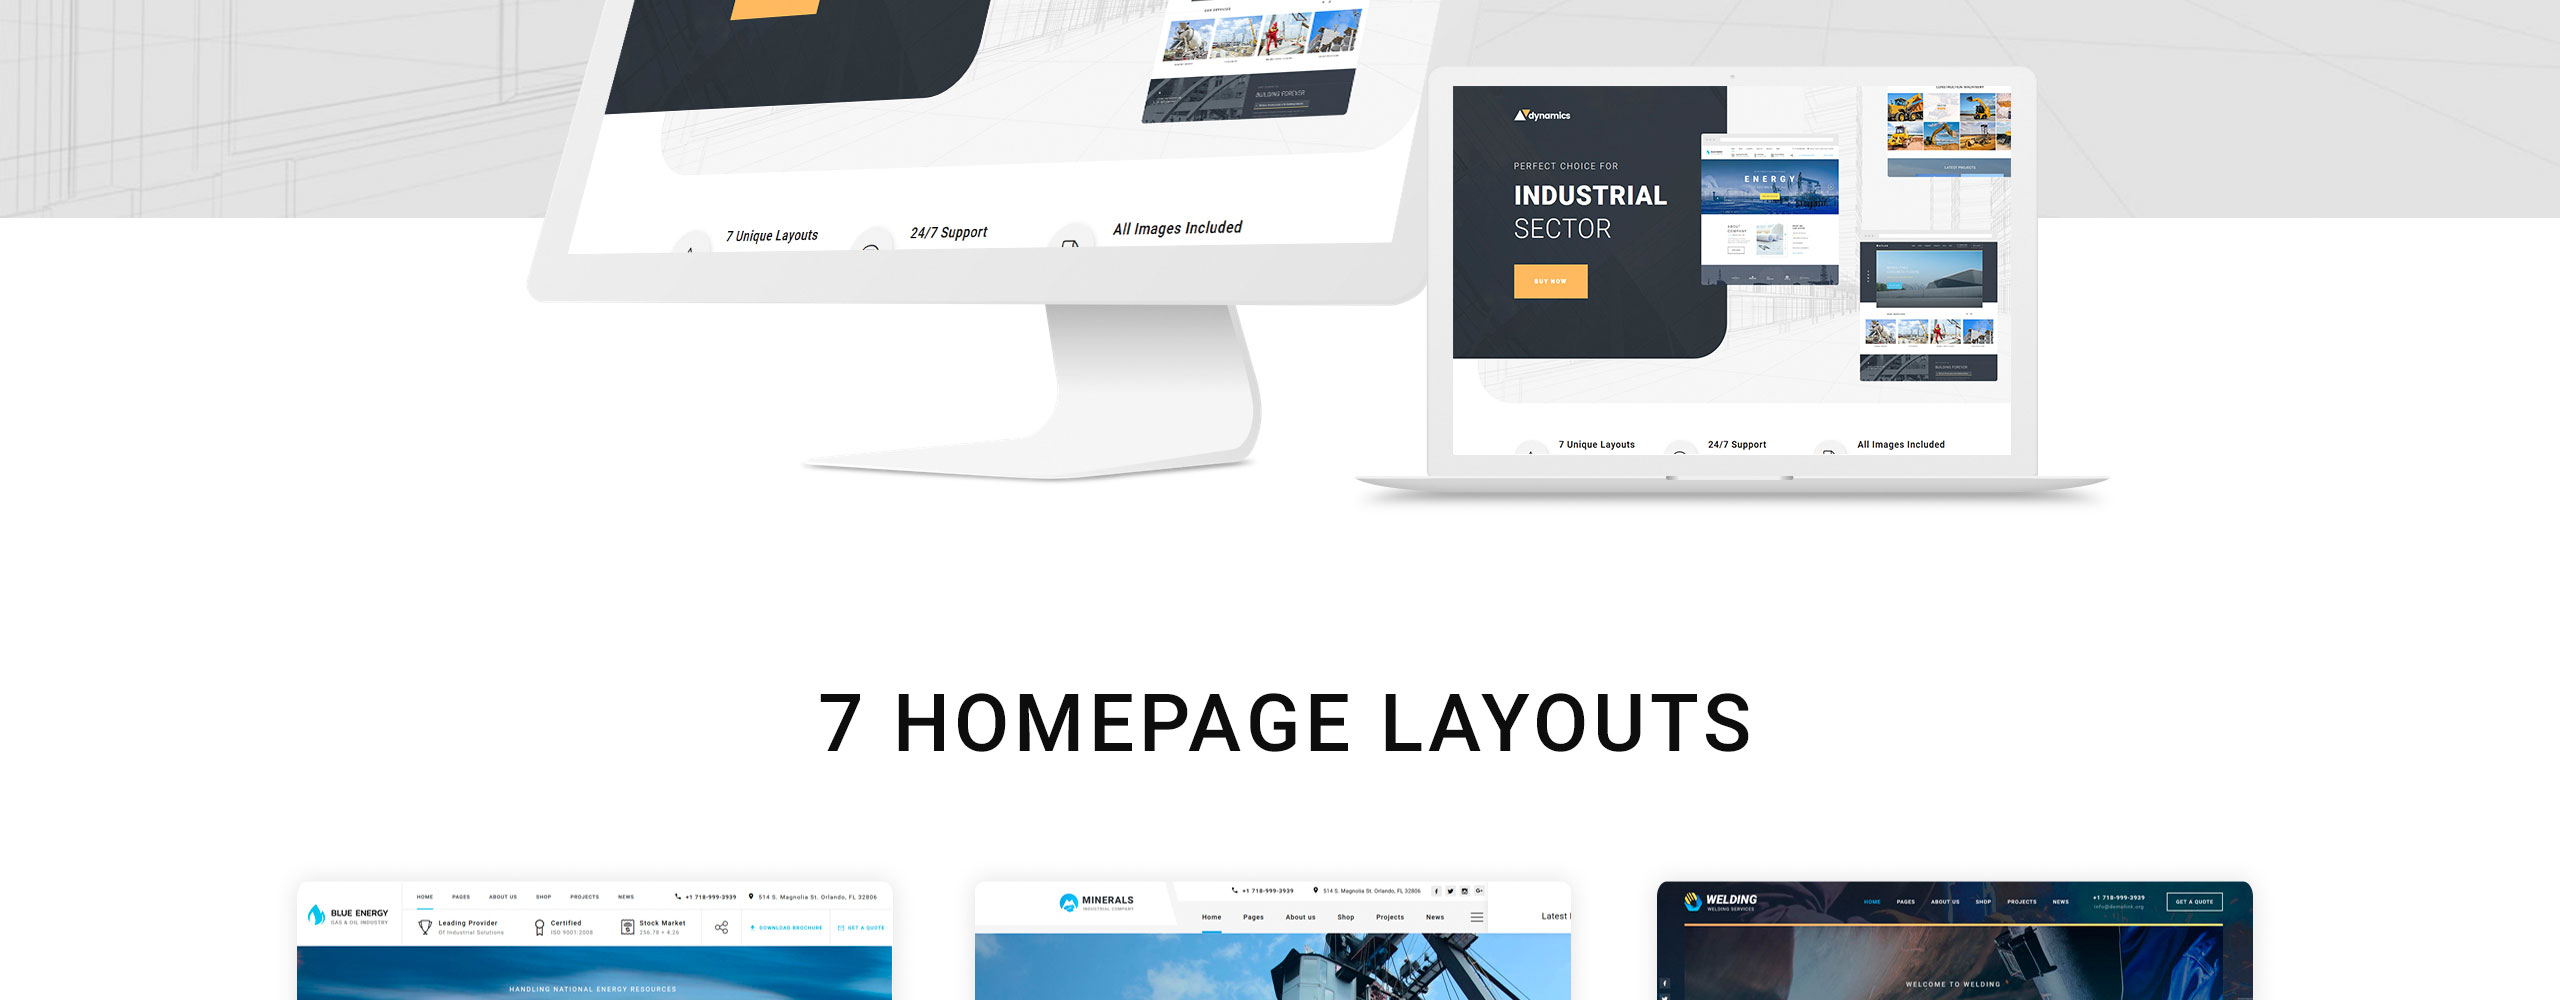 Dynamics Website Template